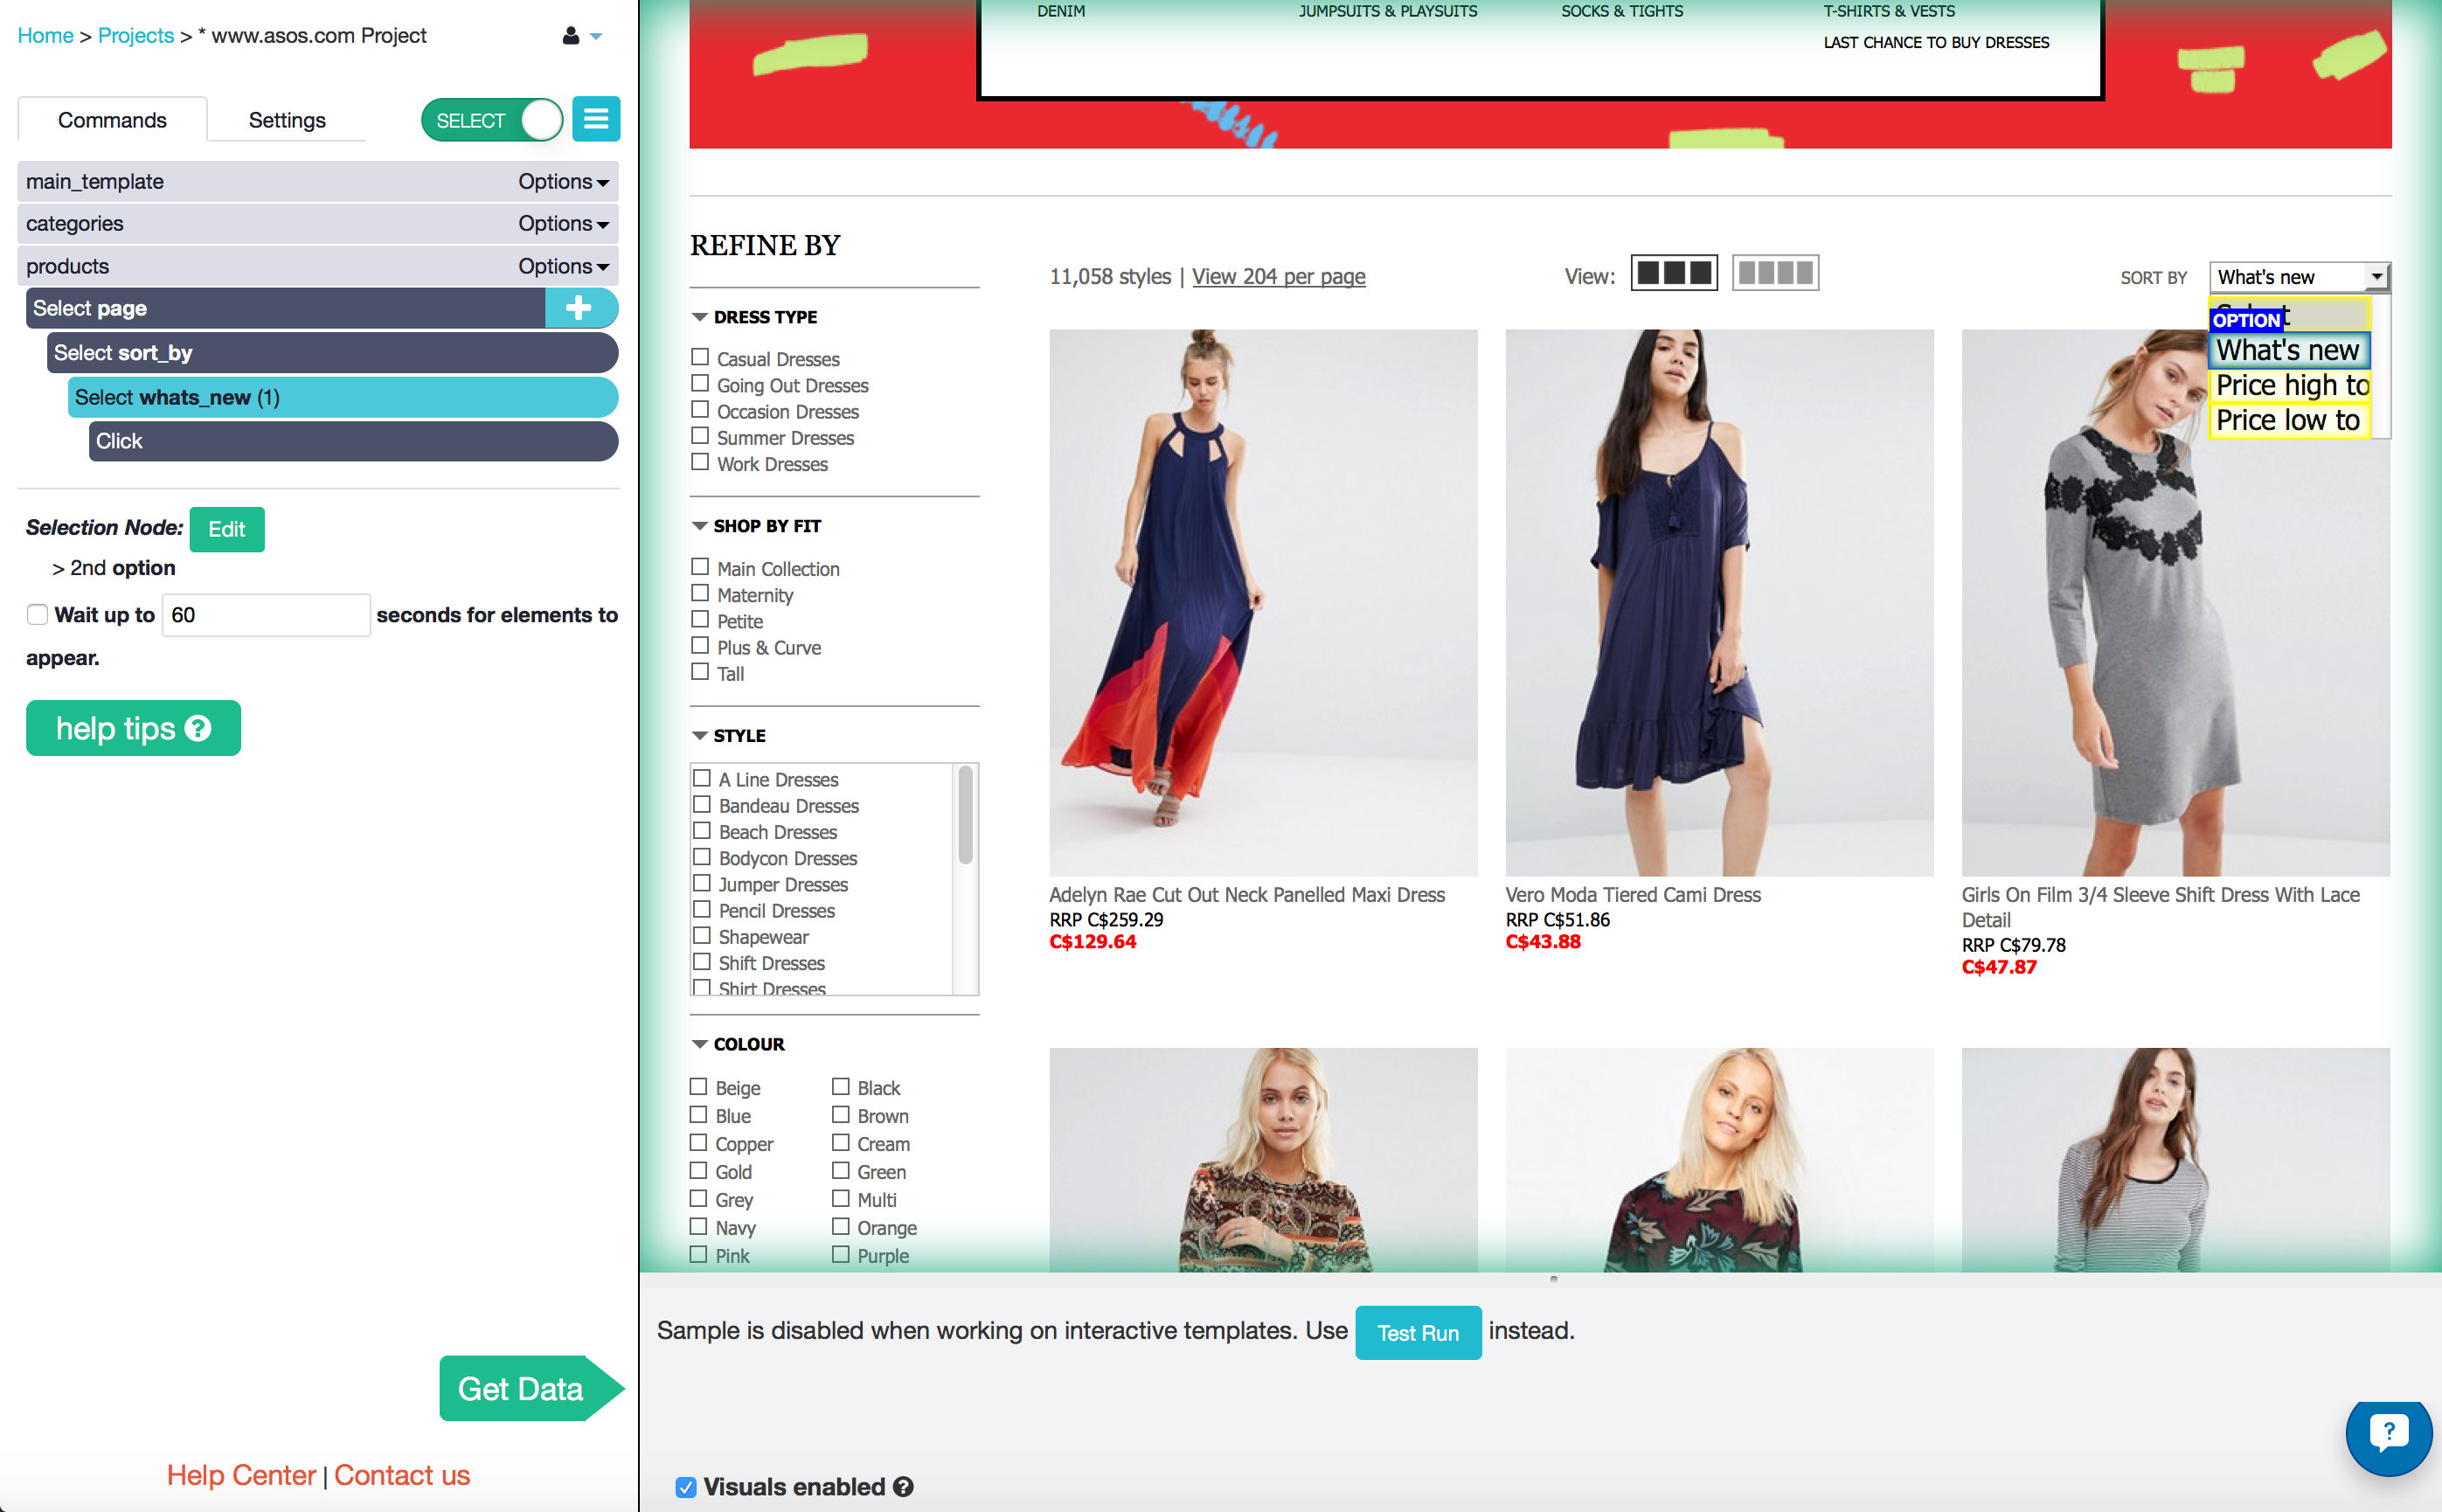 selecting the newest sales on asos